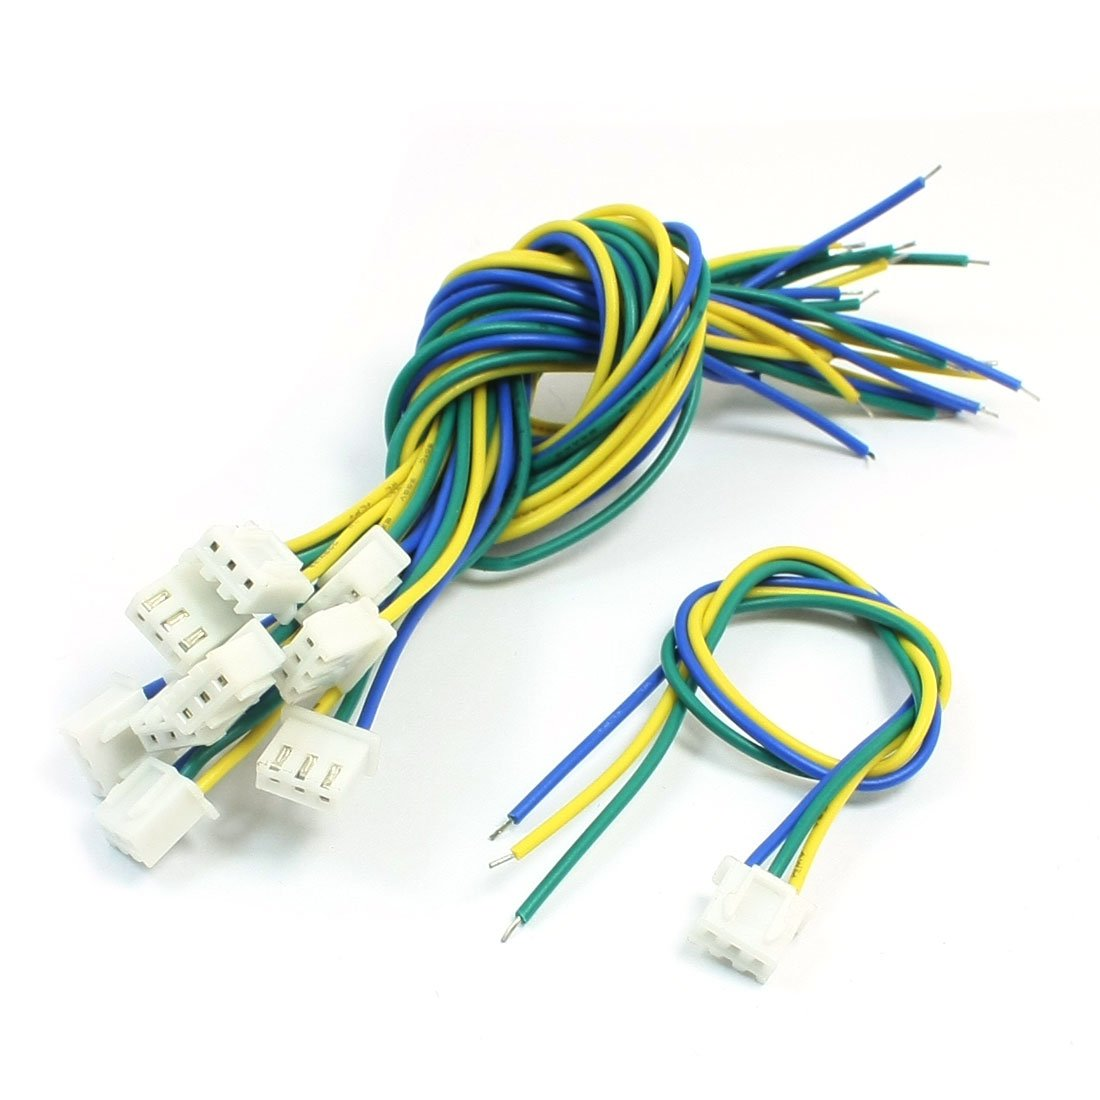 10Pcs JST-XH Connector 24AWG Wire 20cm Long for RC Radio Control Plane